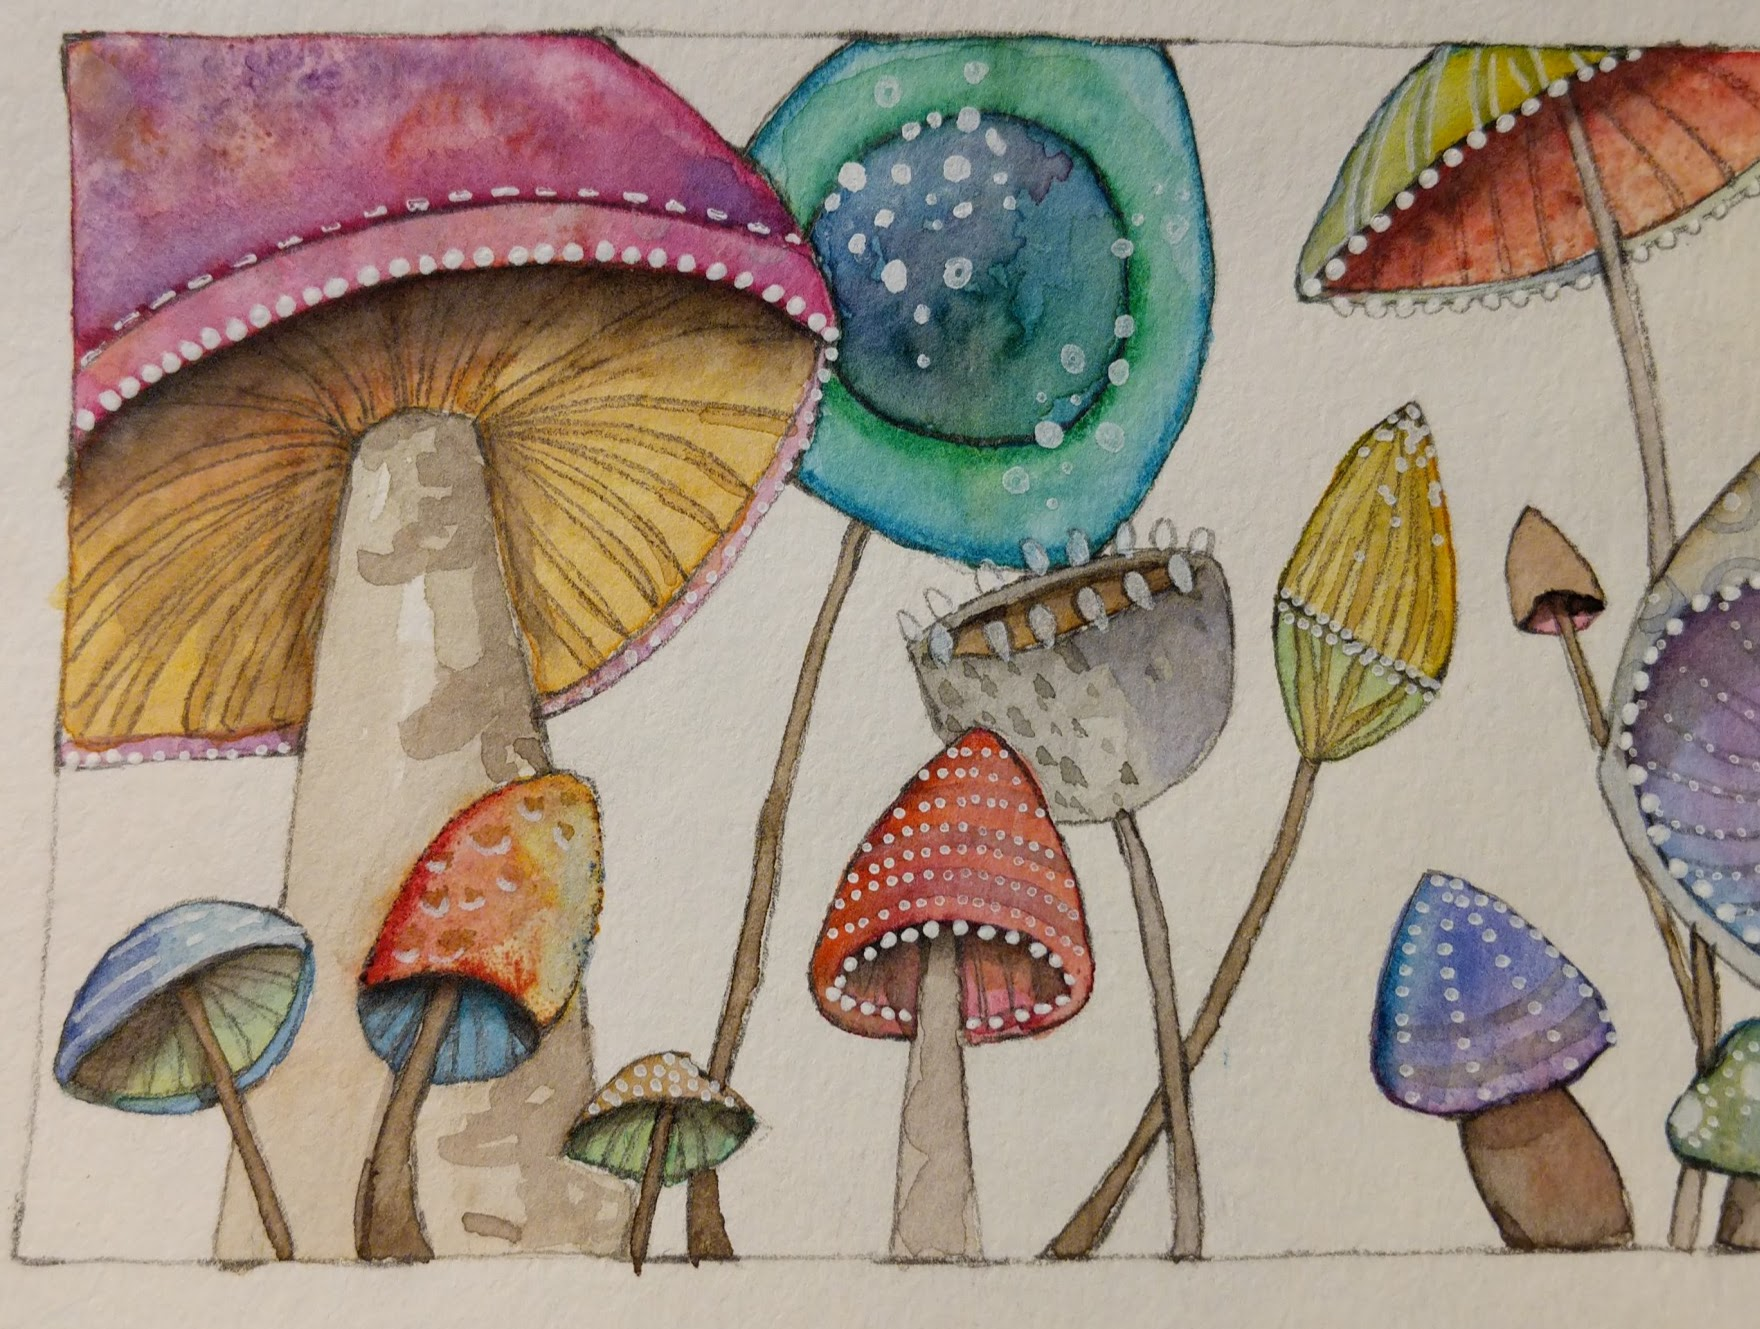 Watercolor mushrooms full of color and doodles.